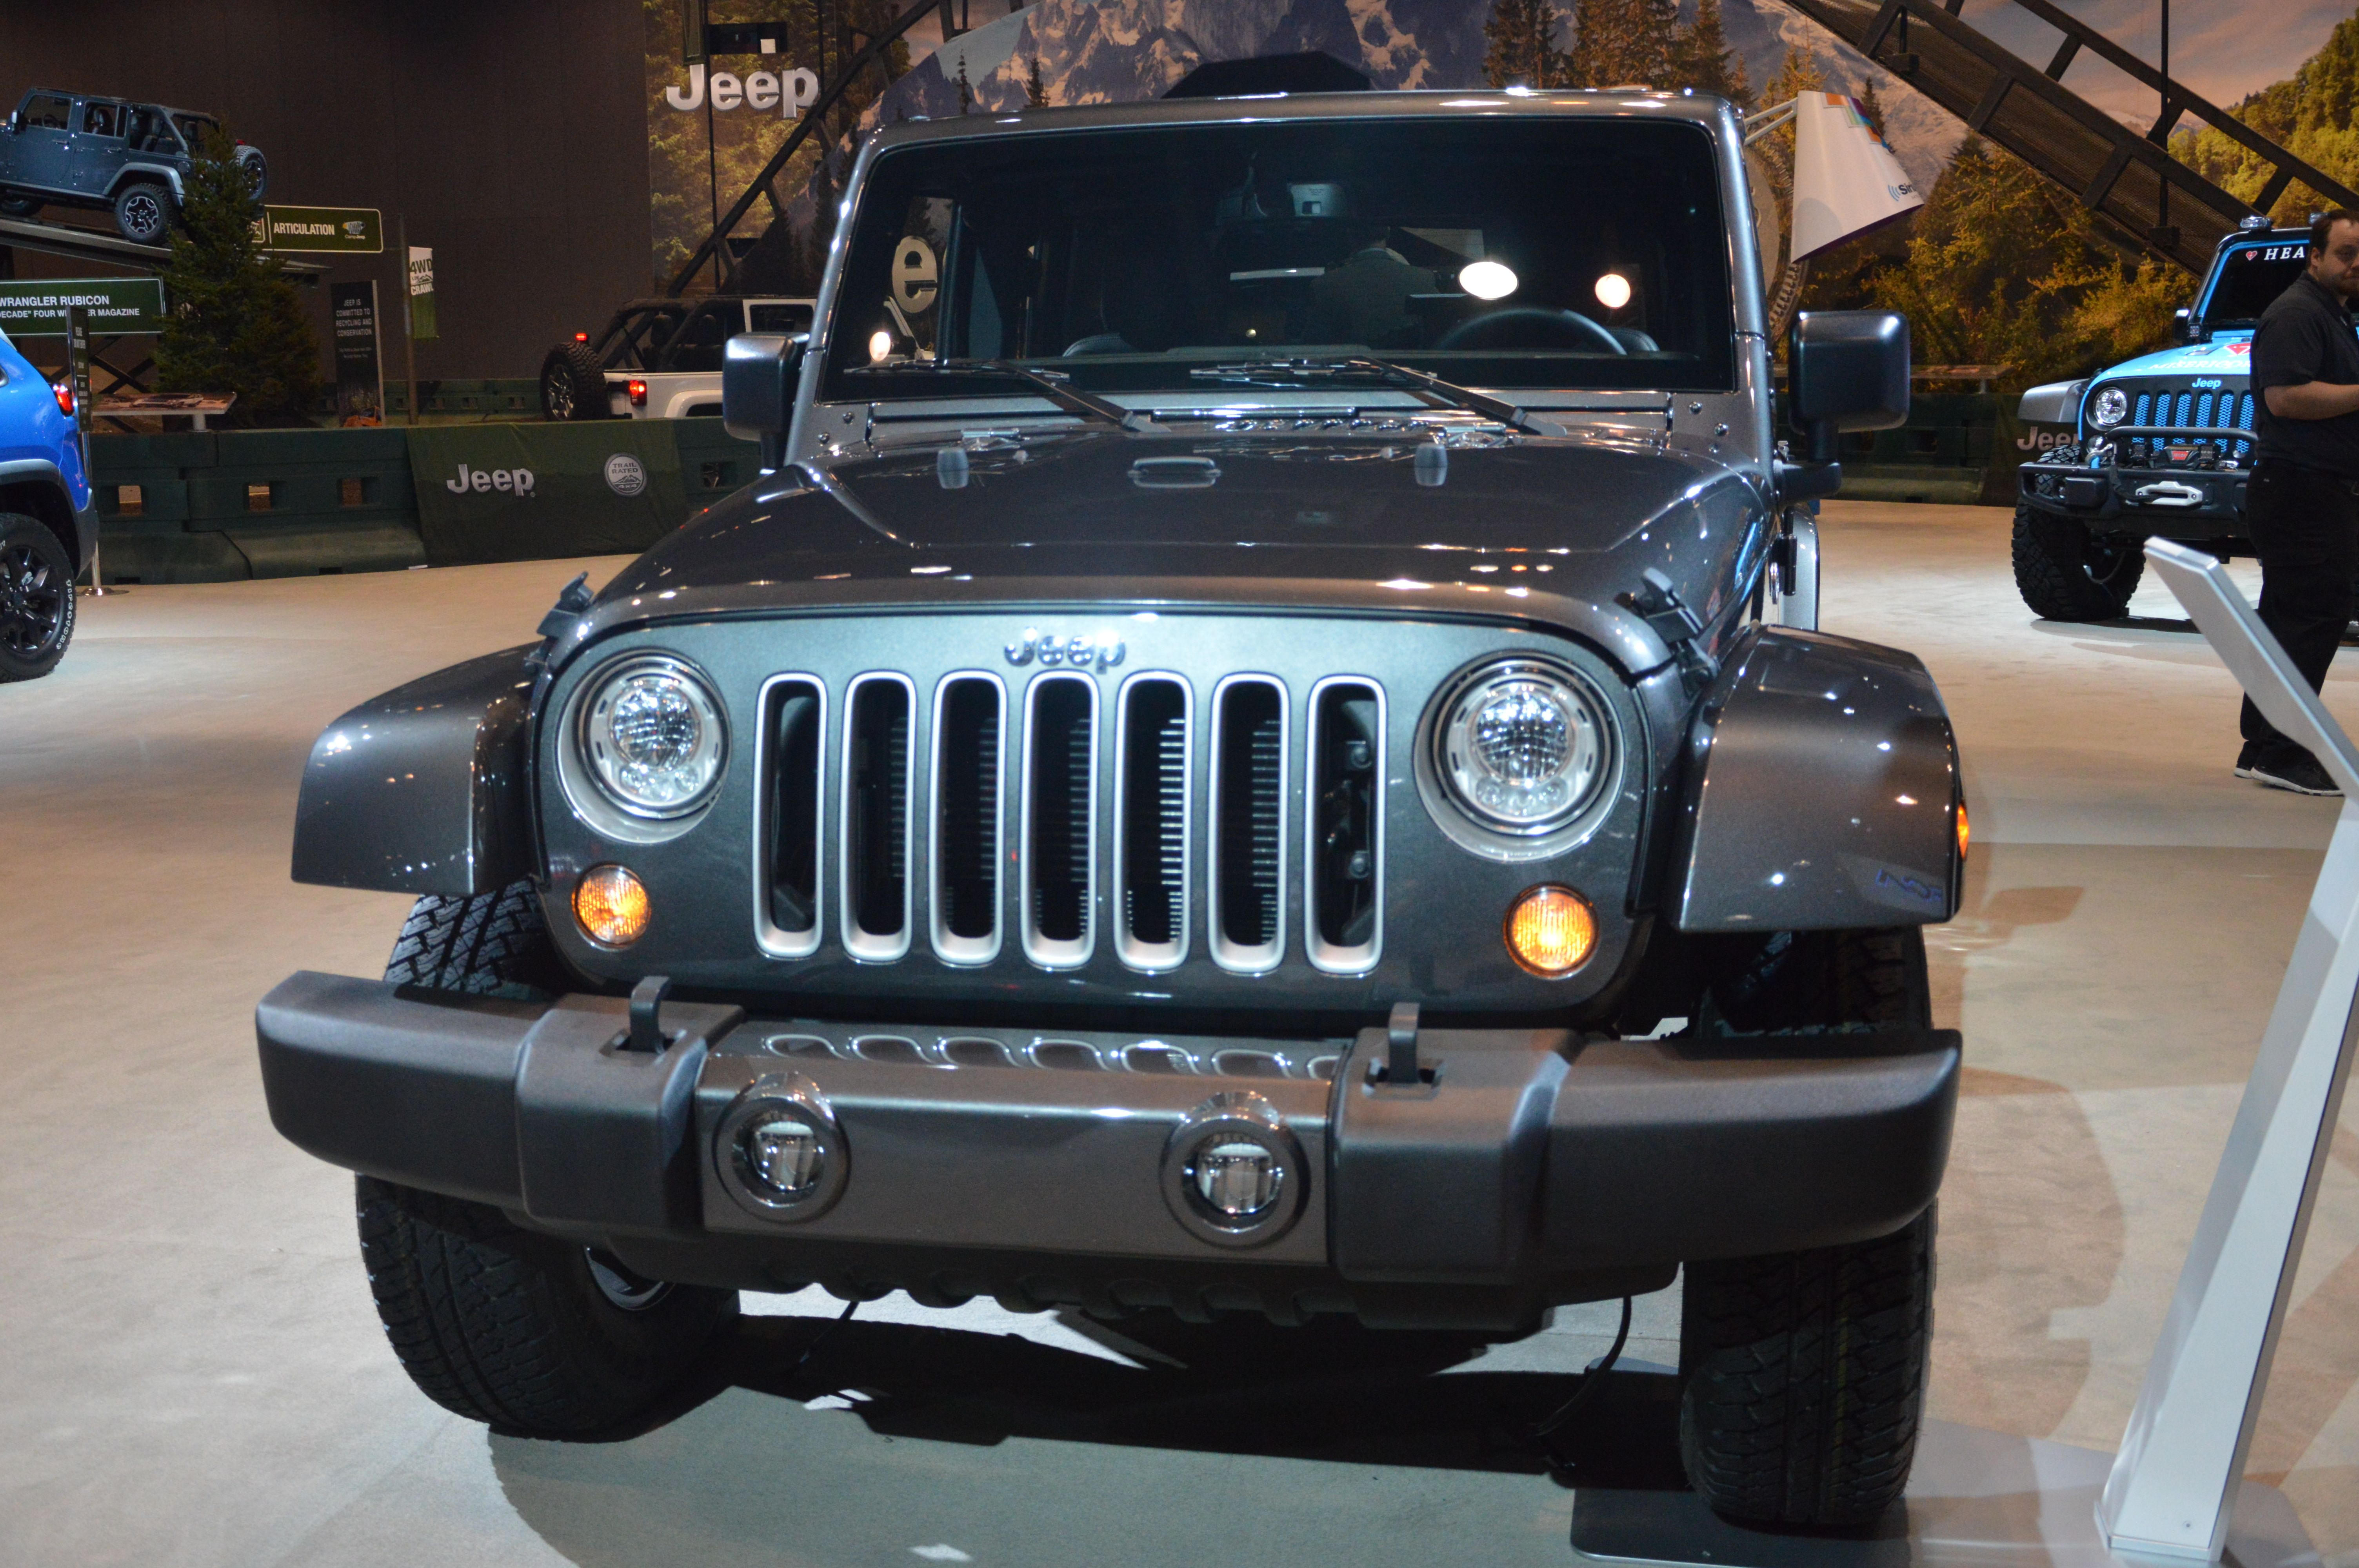 unlimited sport wrangler used vehicle new en baie comeau inventory quebec in jeep hyundai olivier